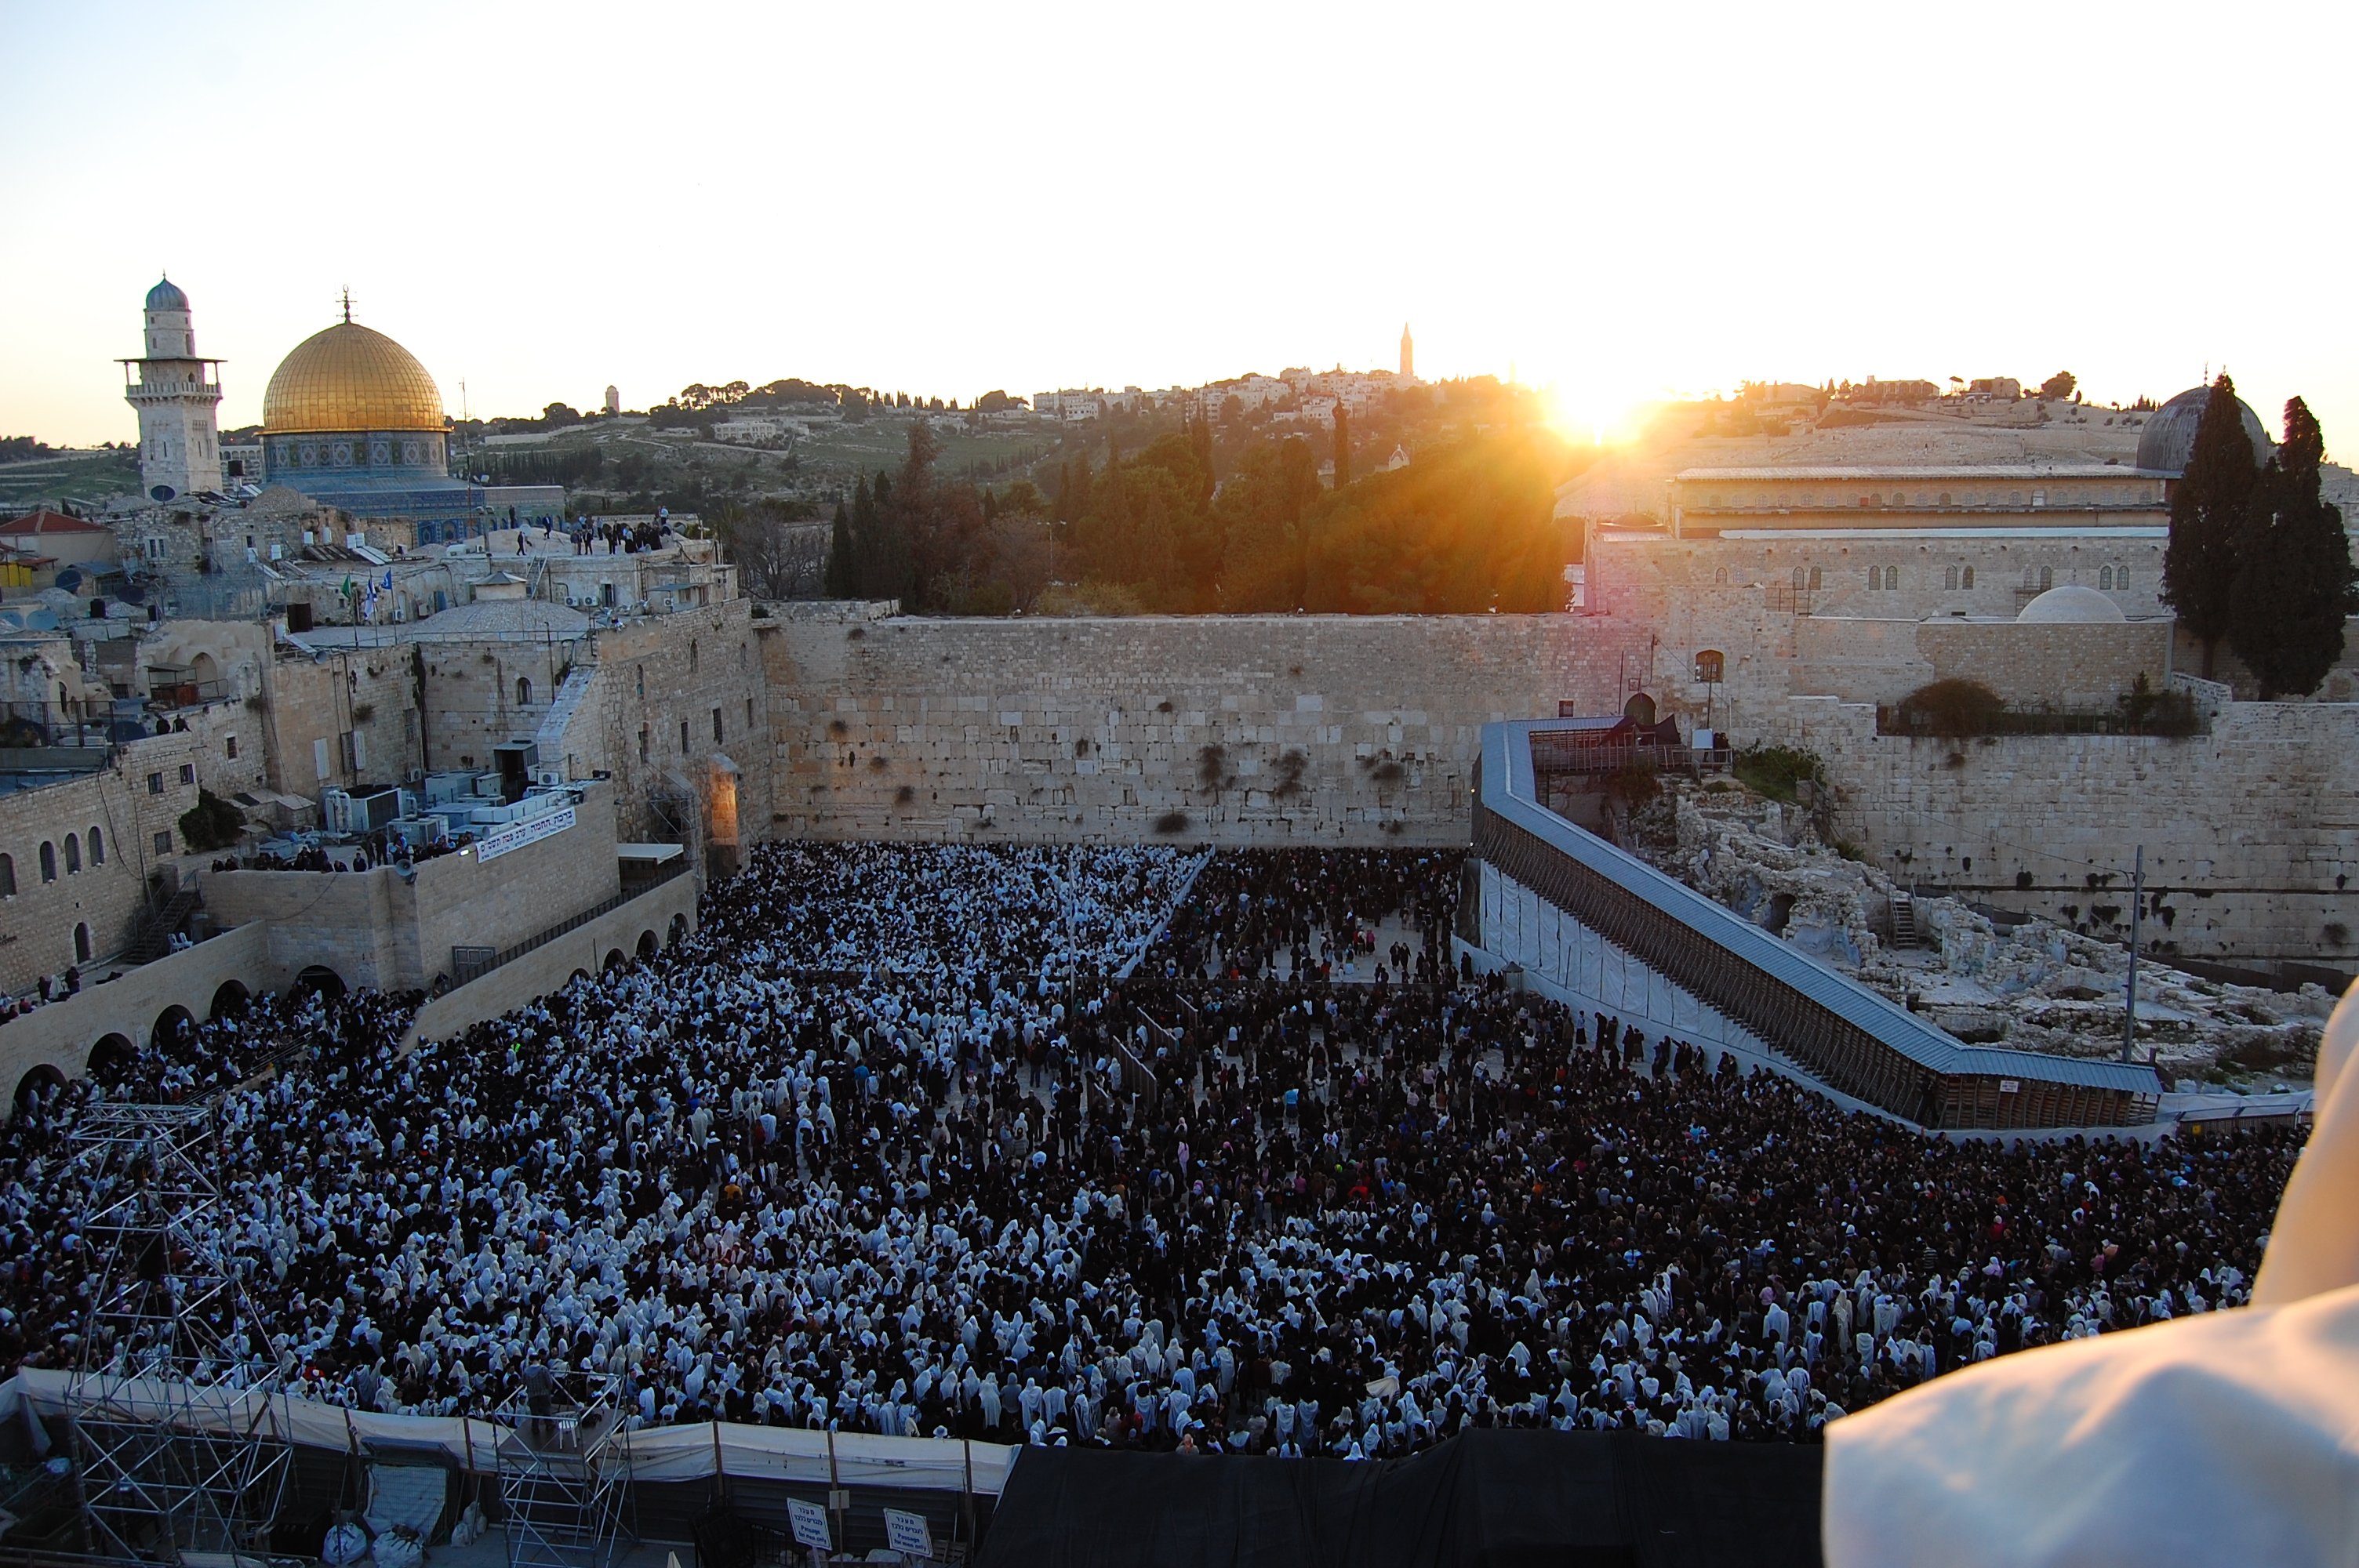 Large crowds of worshipers gathered at the Western Wall